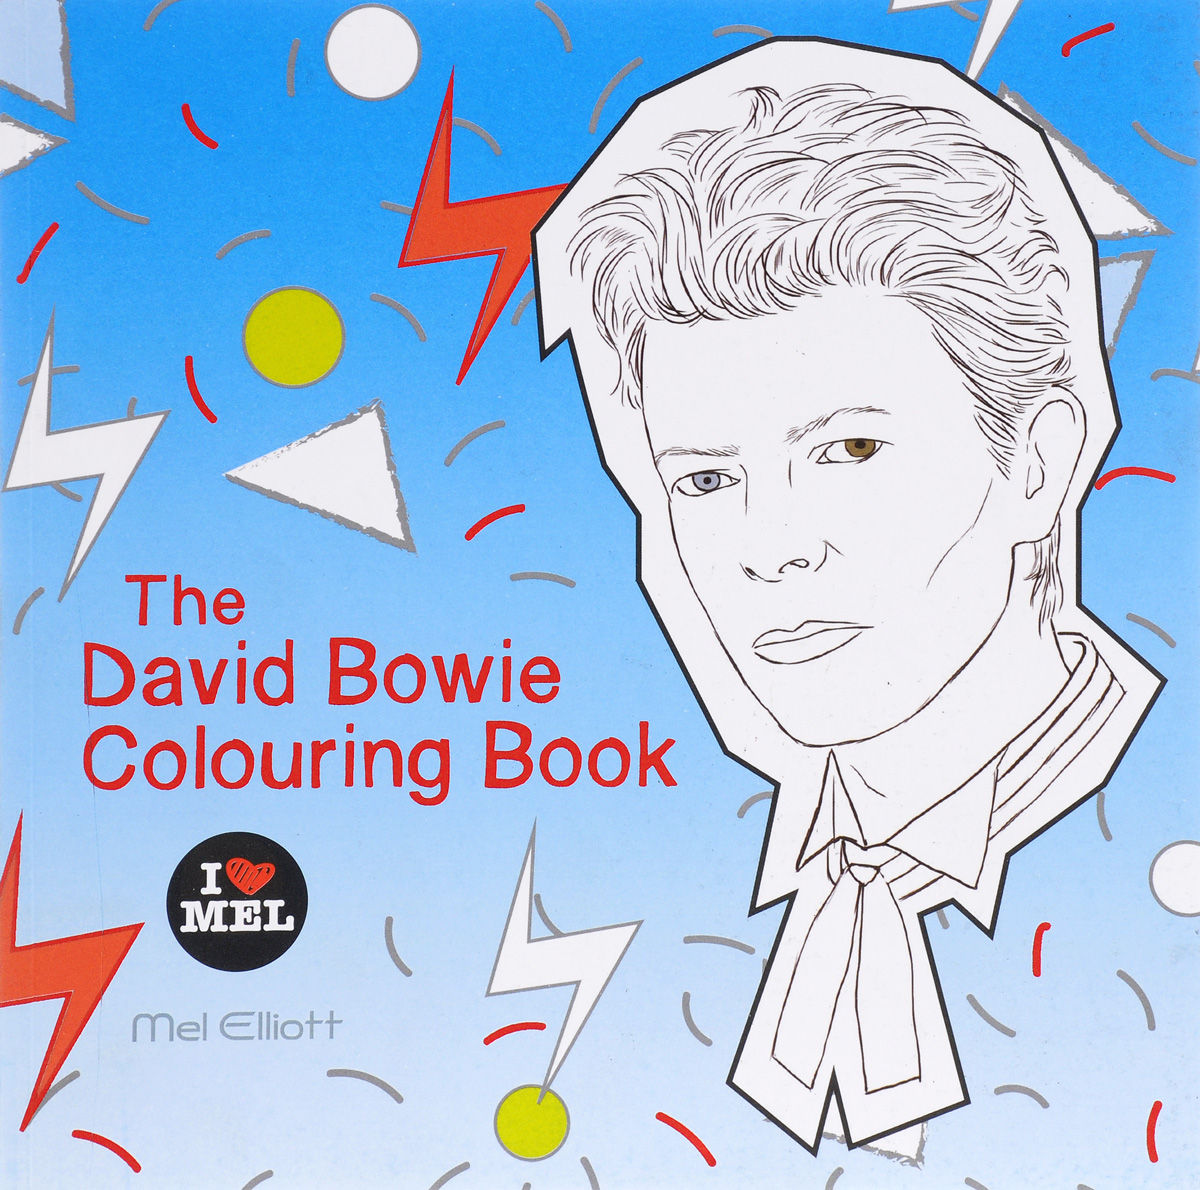 The David Bowie Colouring Book zippo zippo 28287